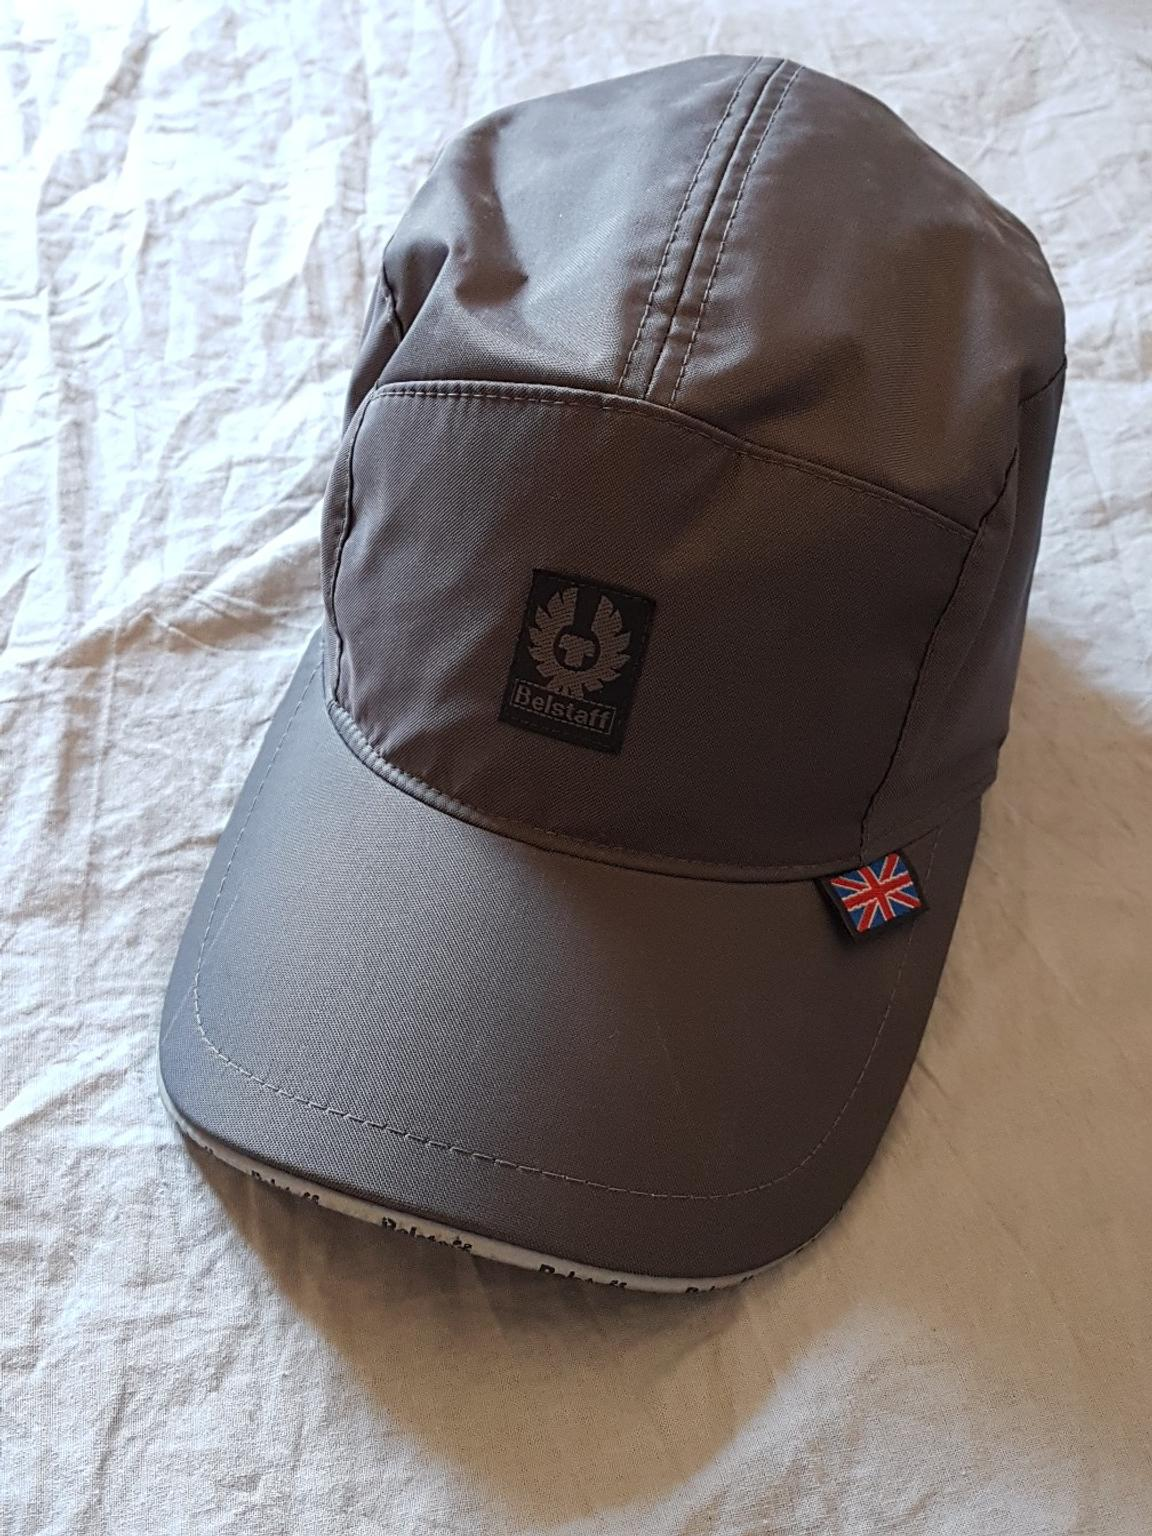 BELSTAFF cappello in 27100 Pavia for €20.00 for sale - Shpock 5c59b1381a65